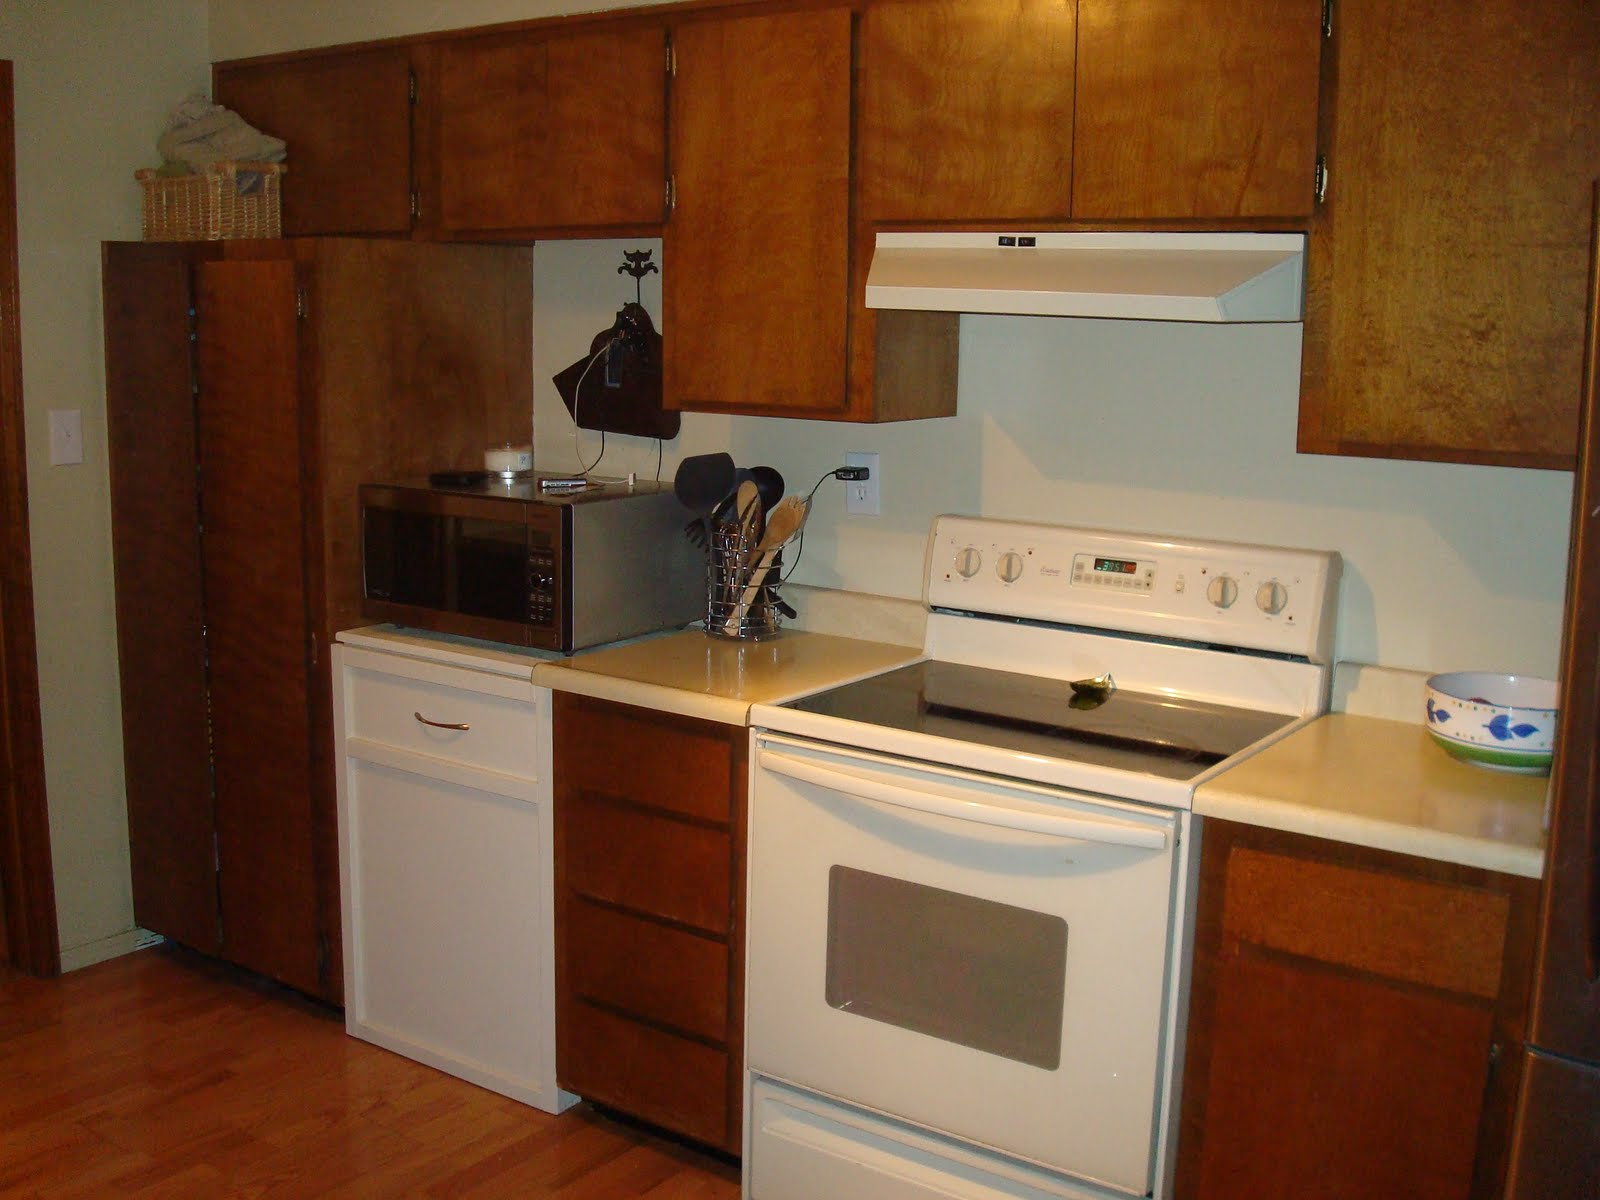 Just me low budget kitchen remodel for Kitchen remodels on a budget